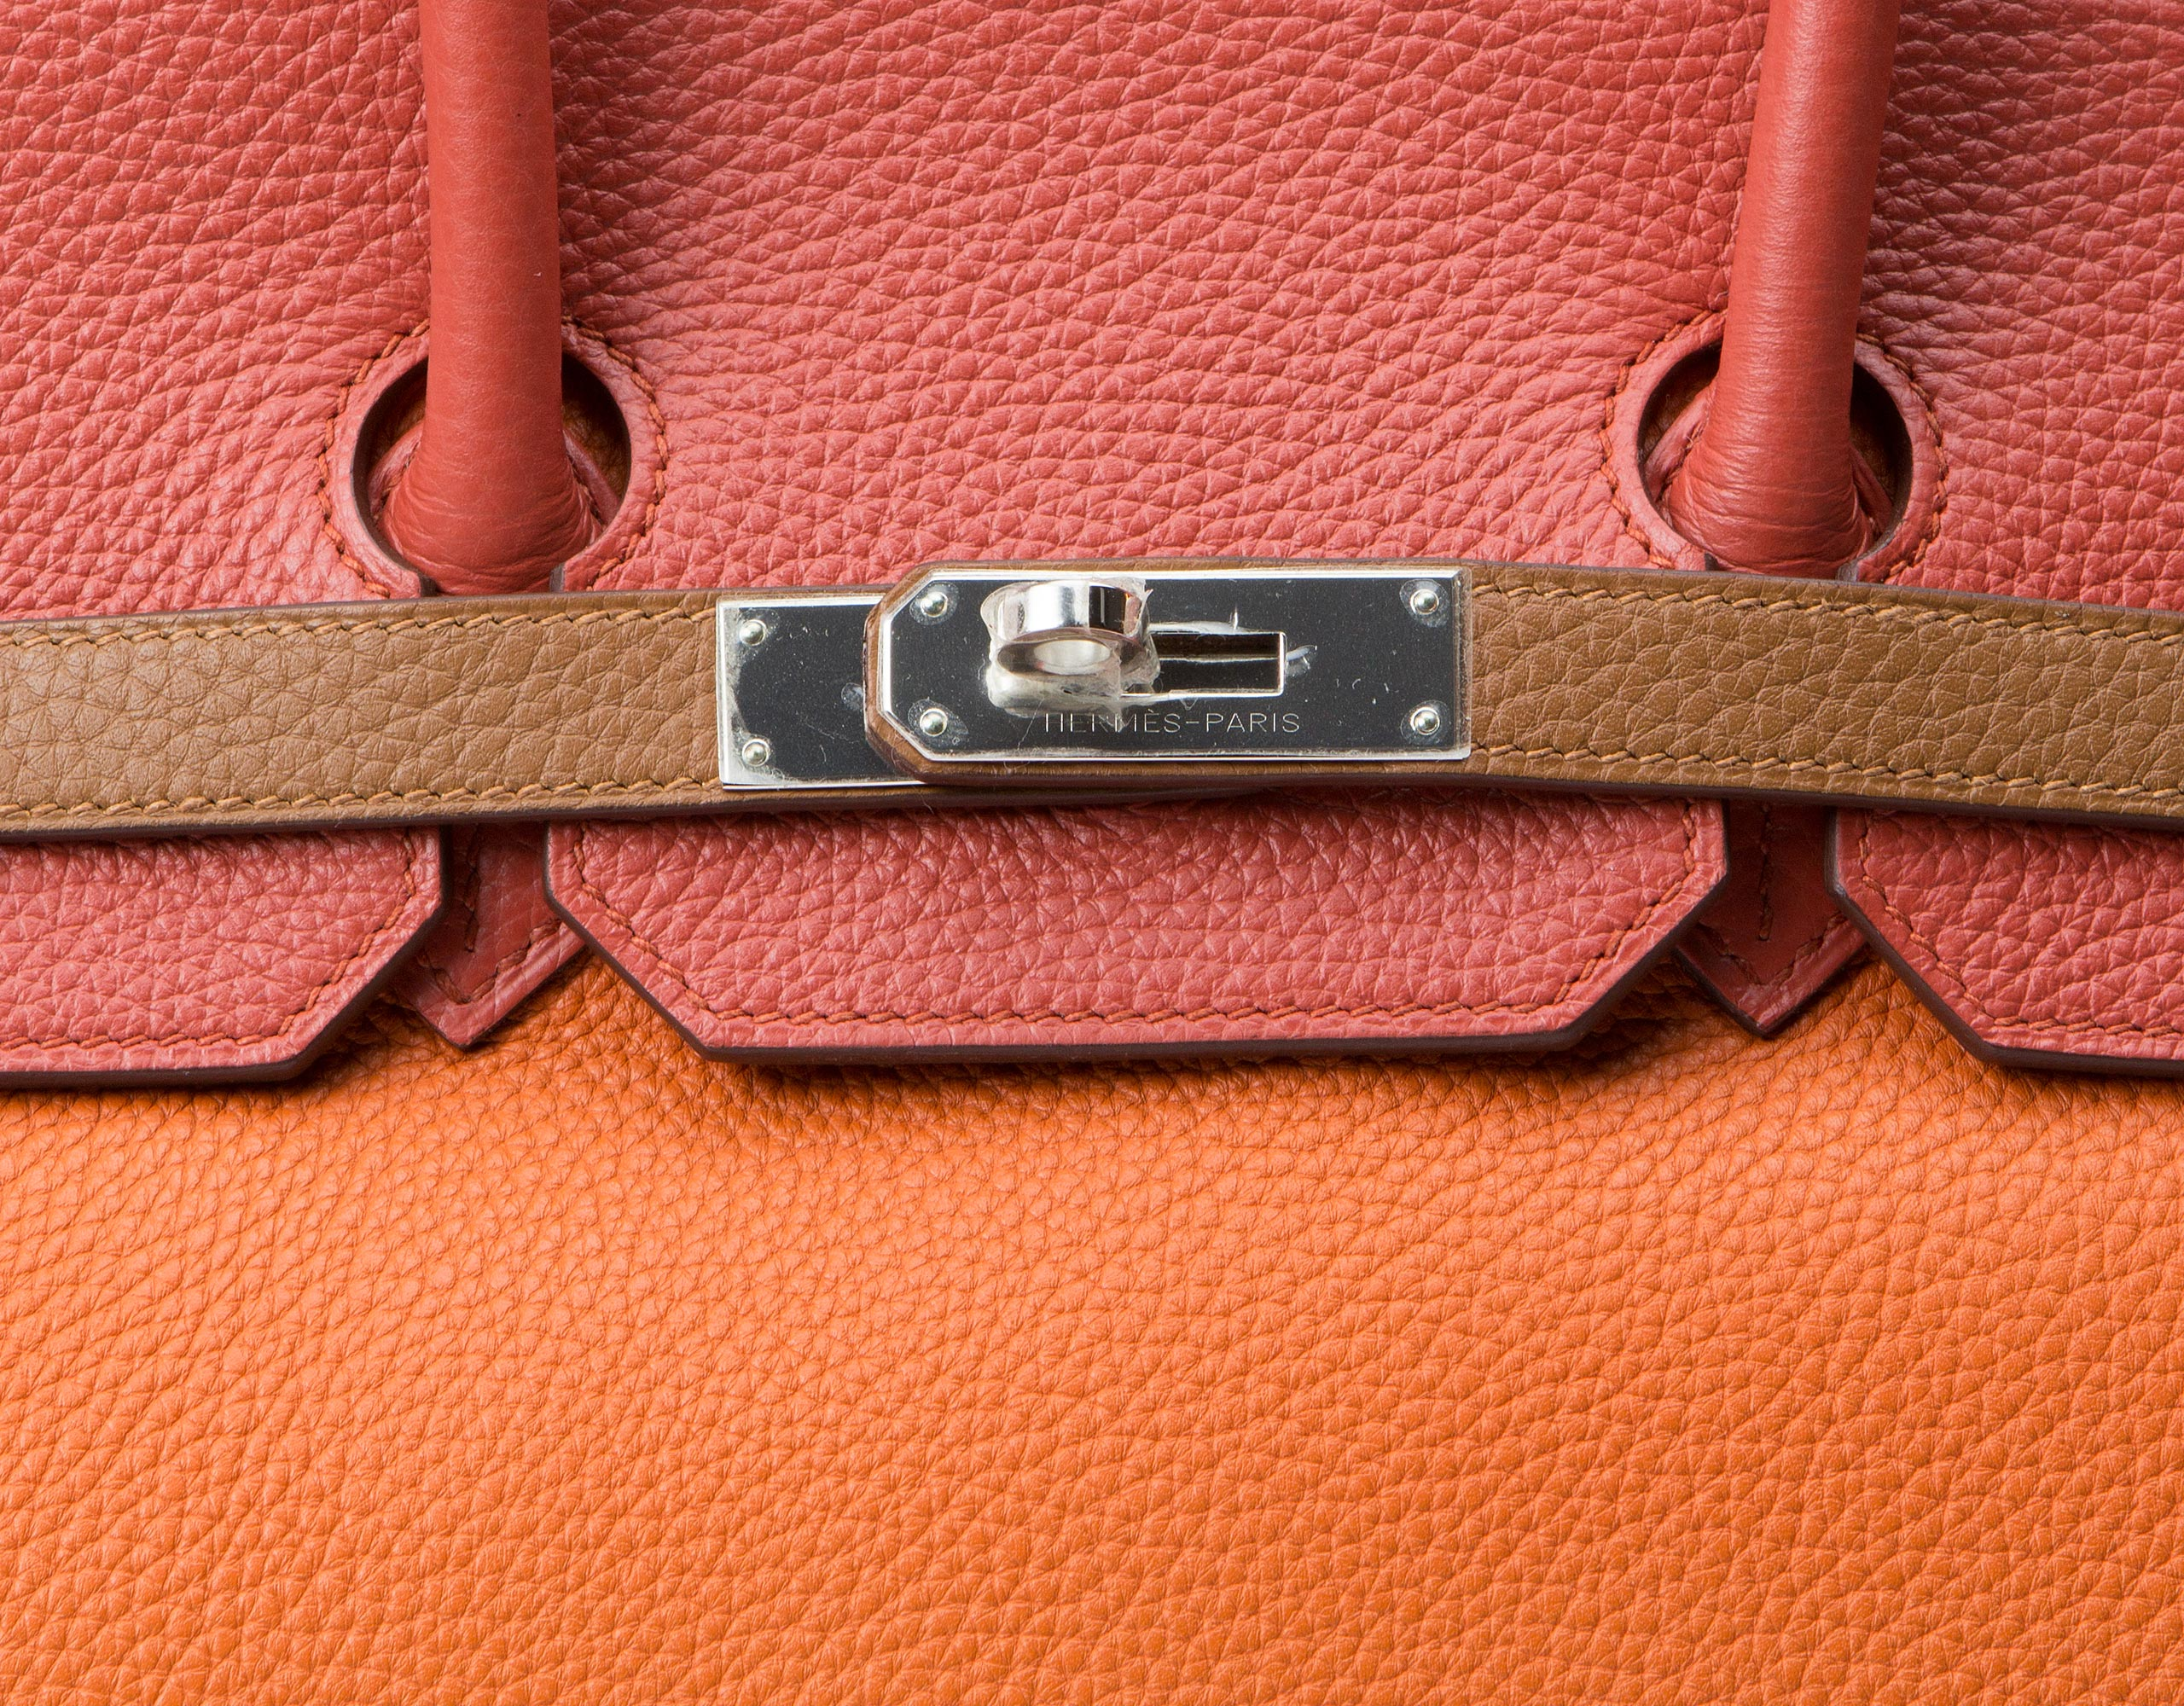 hermes travel birkin - Hermes Birkin Bag, Arlequin, 35cm, Clemence with Palladium